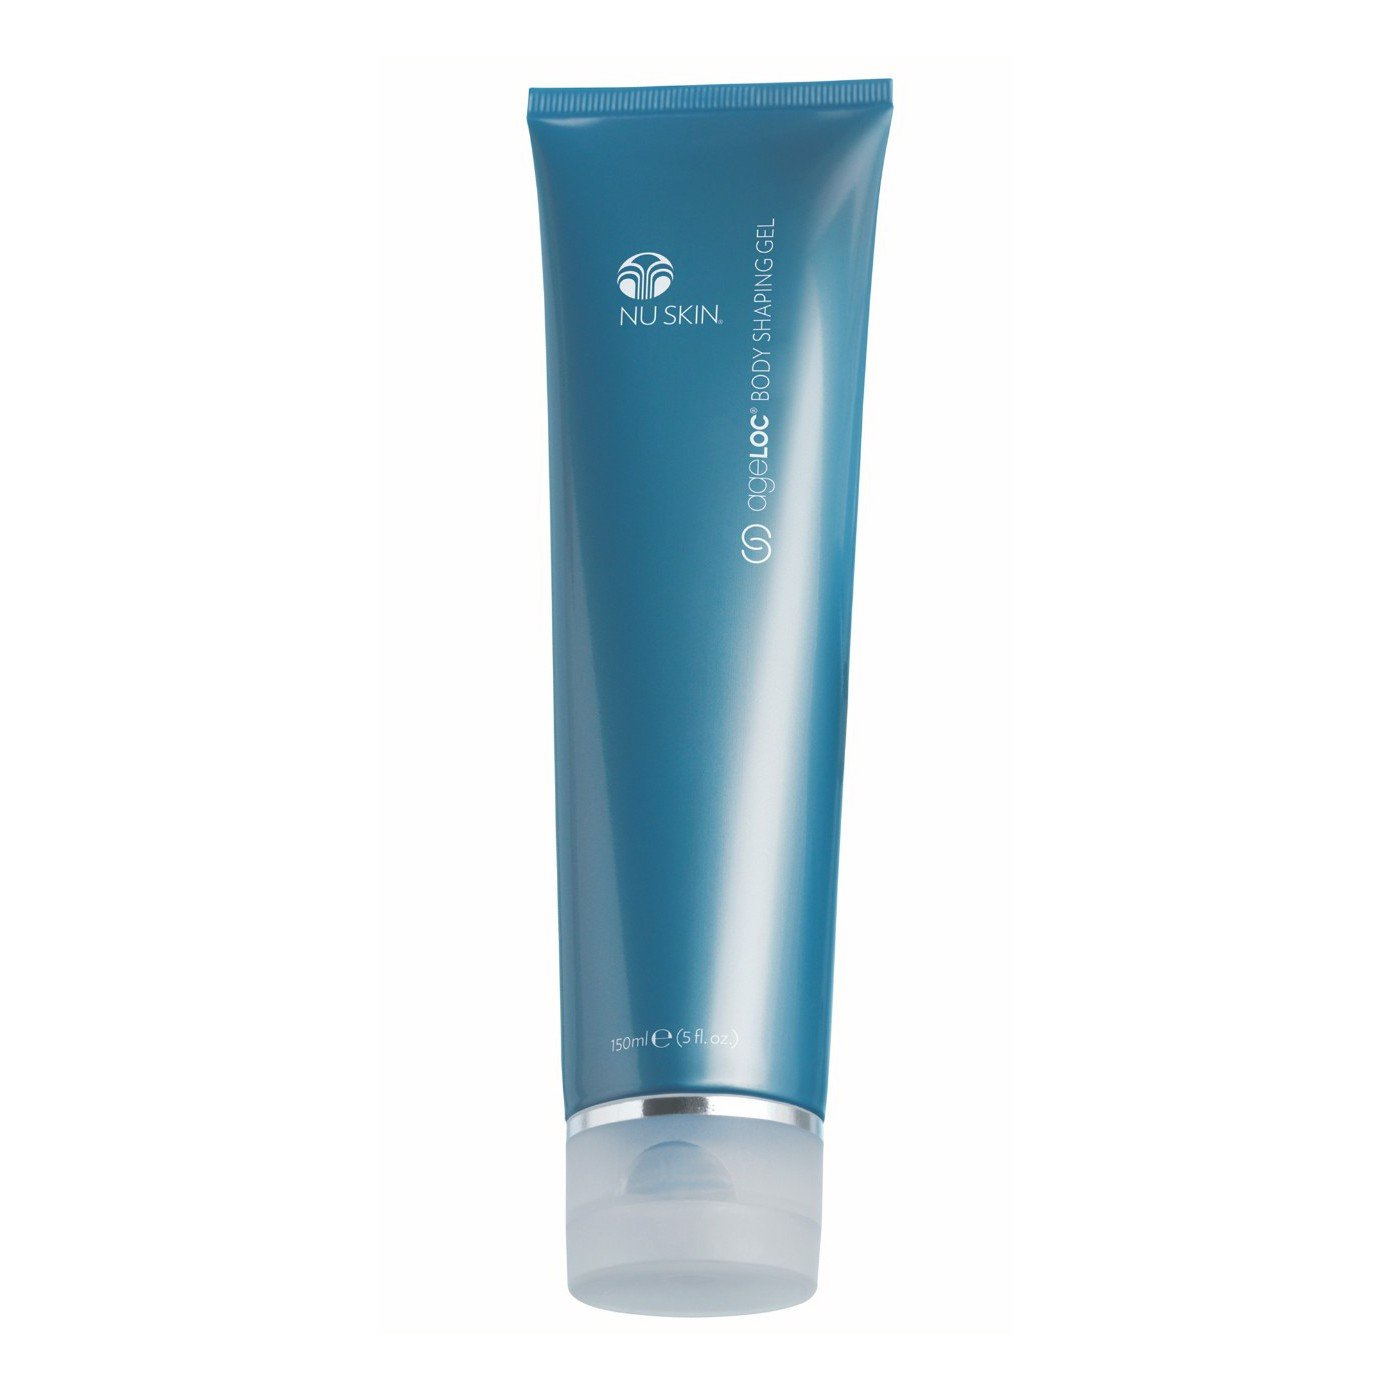 GEL TAN MỠ - ageLOC BODY SHAPING GEL